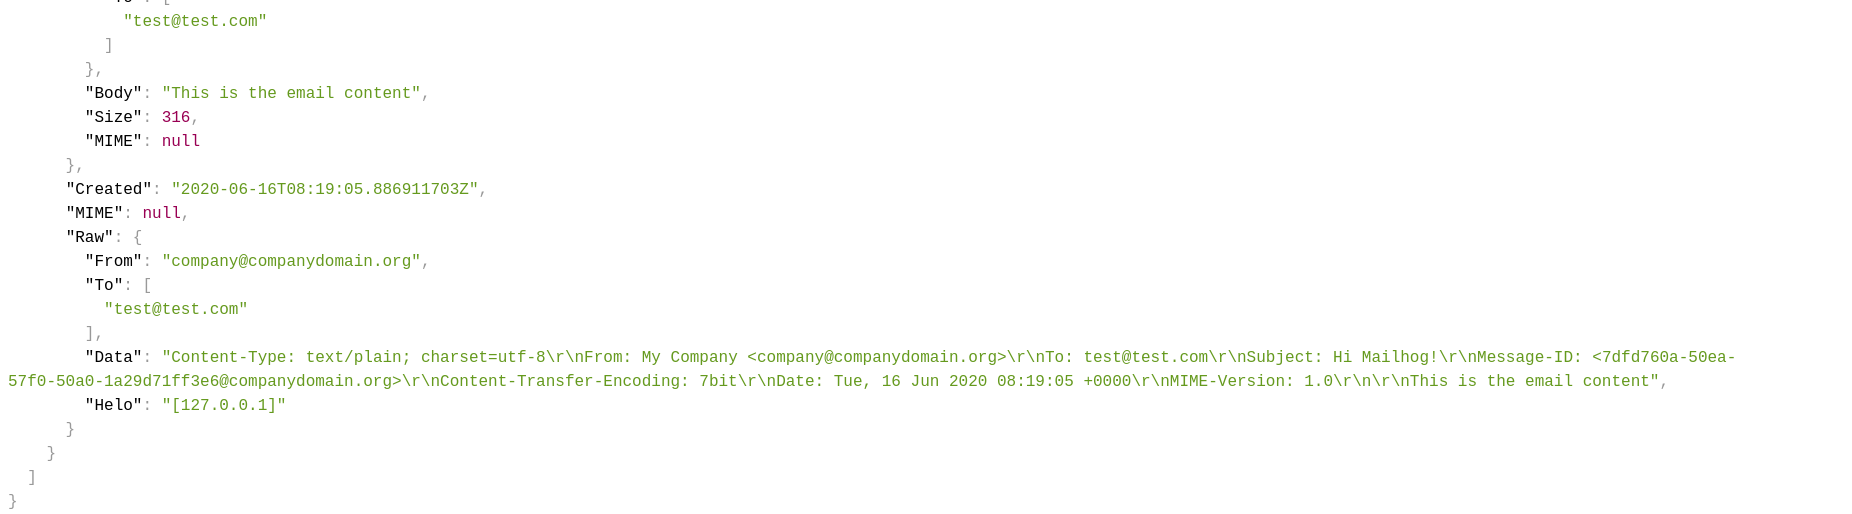 Queried email JSON